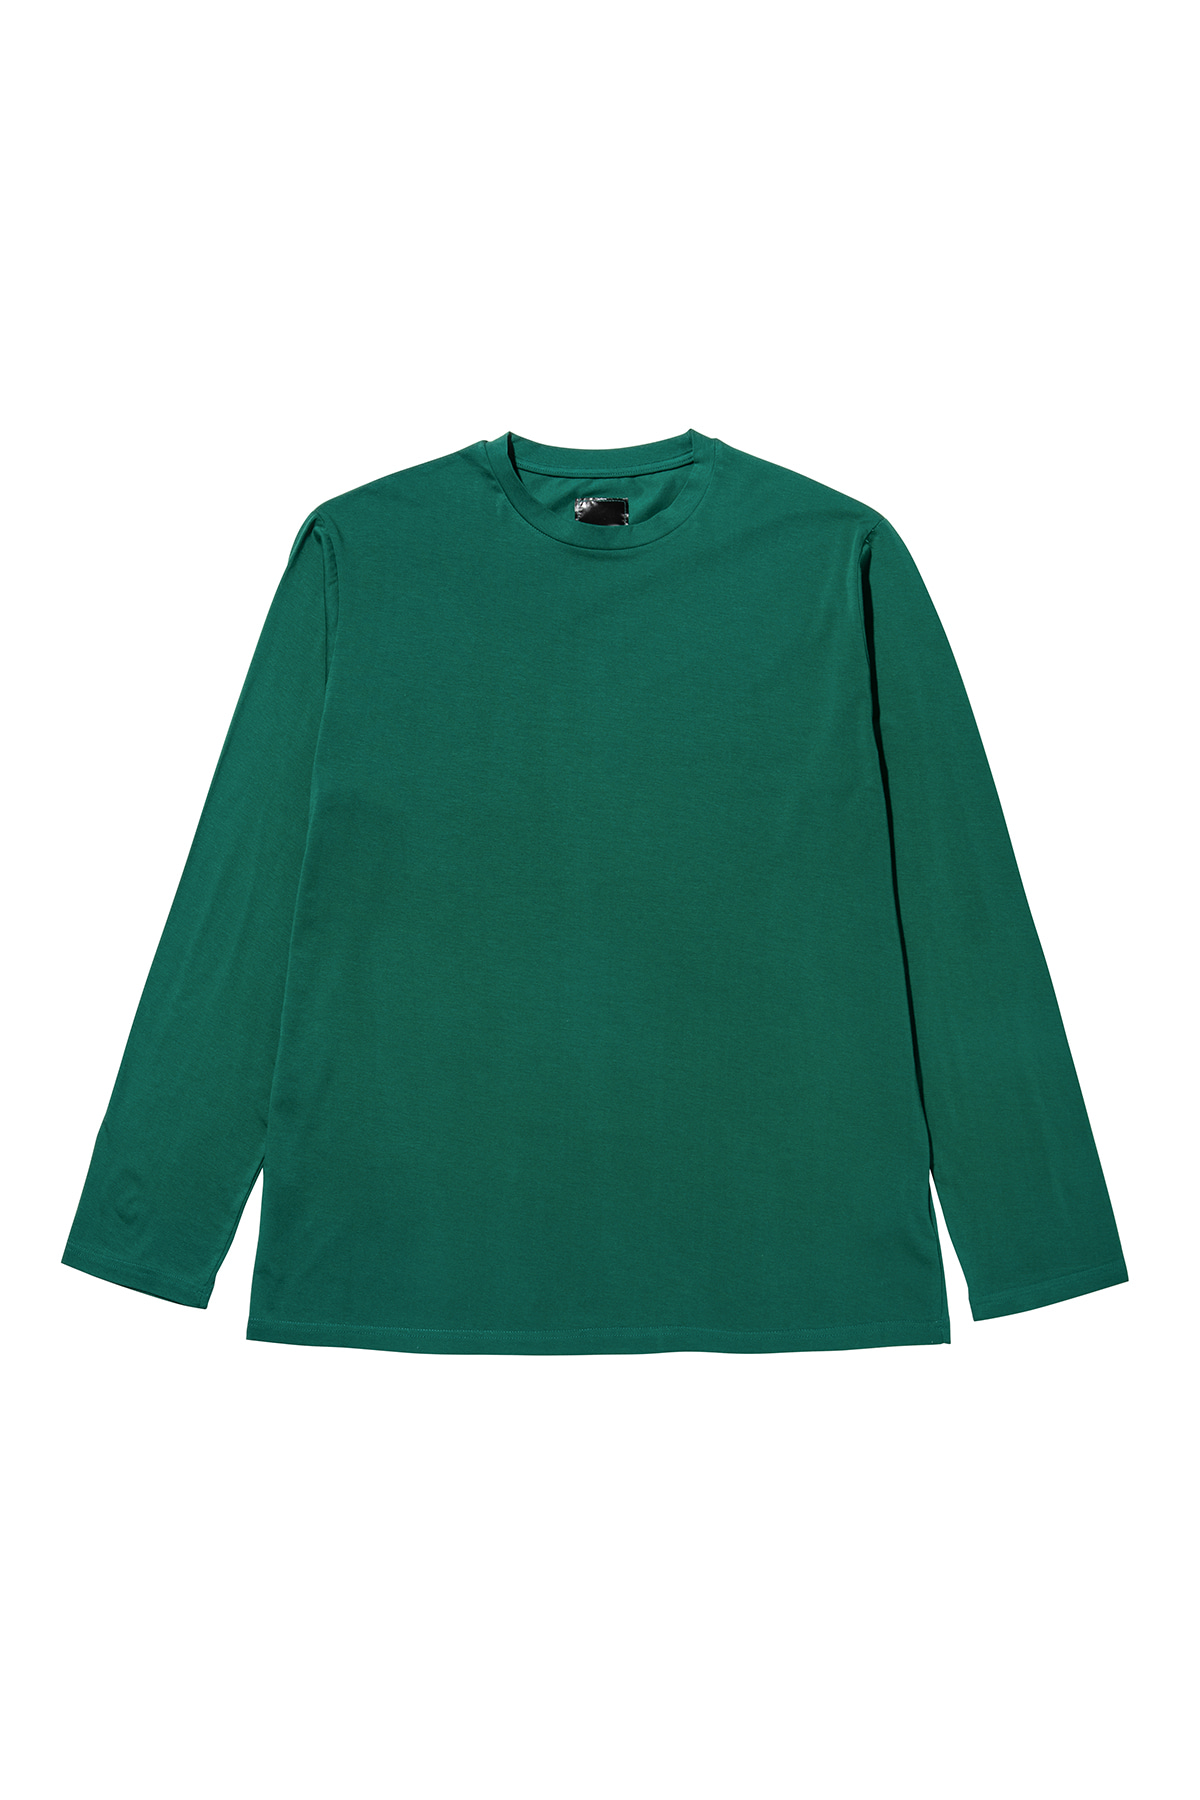 Basic long sleeve T-shirt (green) #jp30